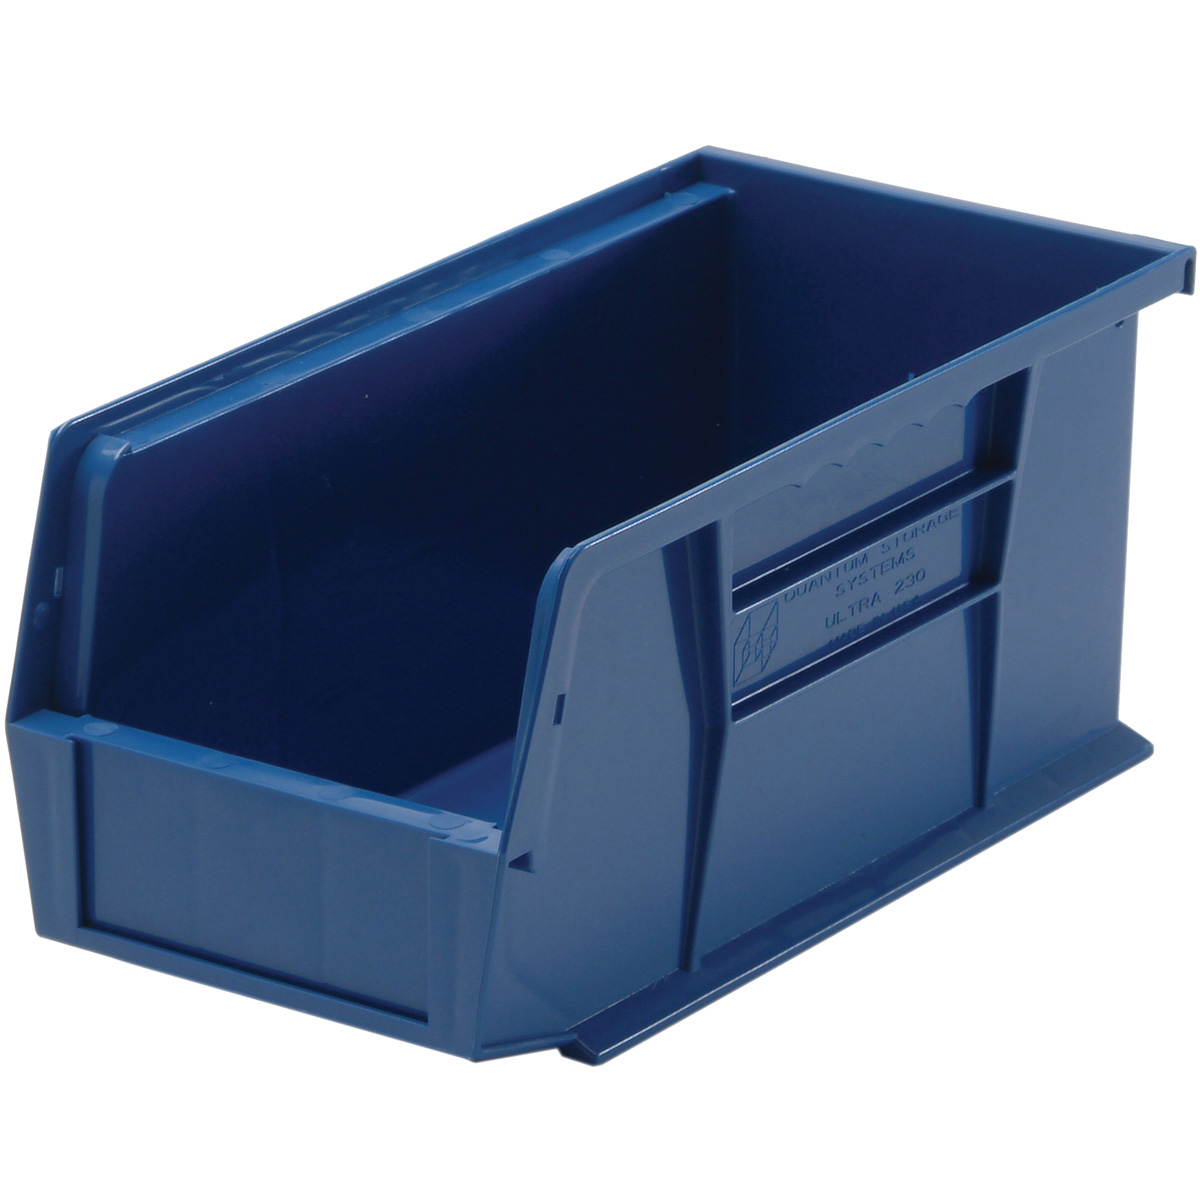 carton of 12 blue plastic storage parts bins qus230 ebay. Black Bedroom Furniture Sets. Home Design Ideas